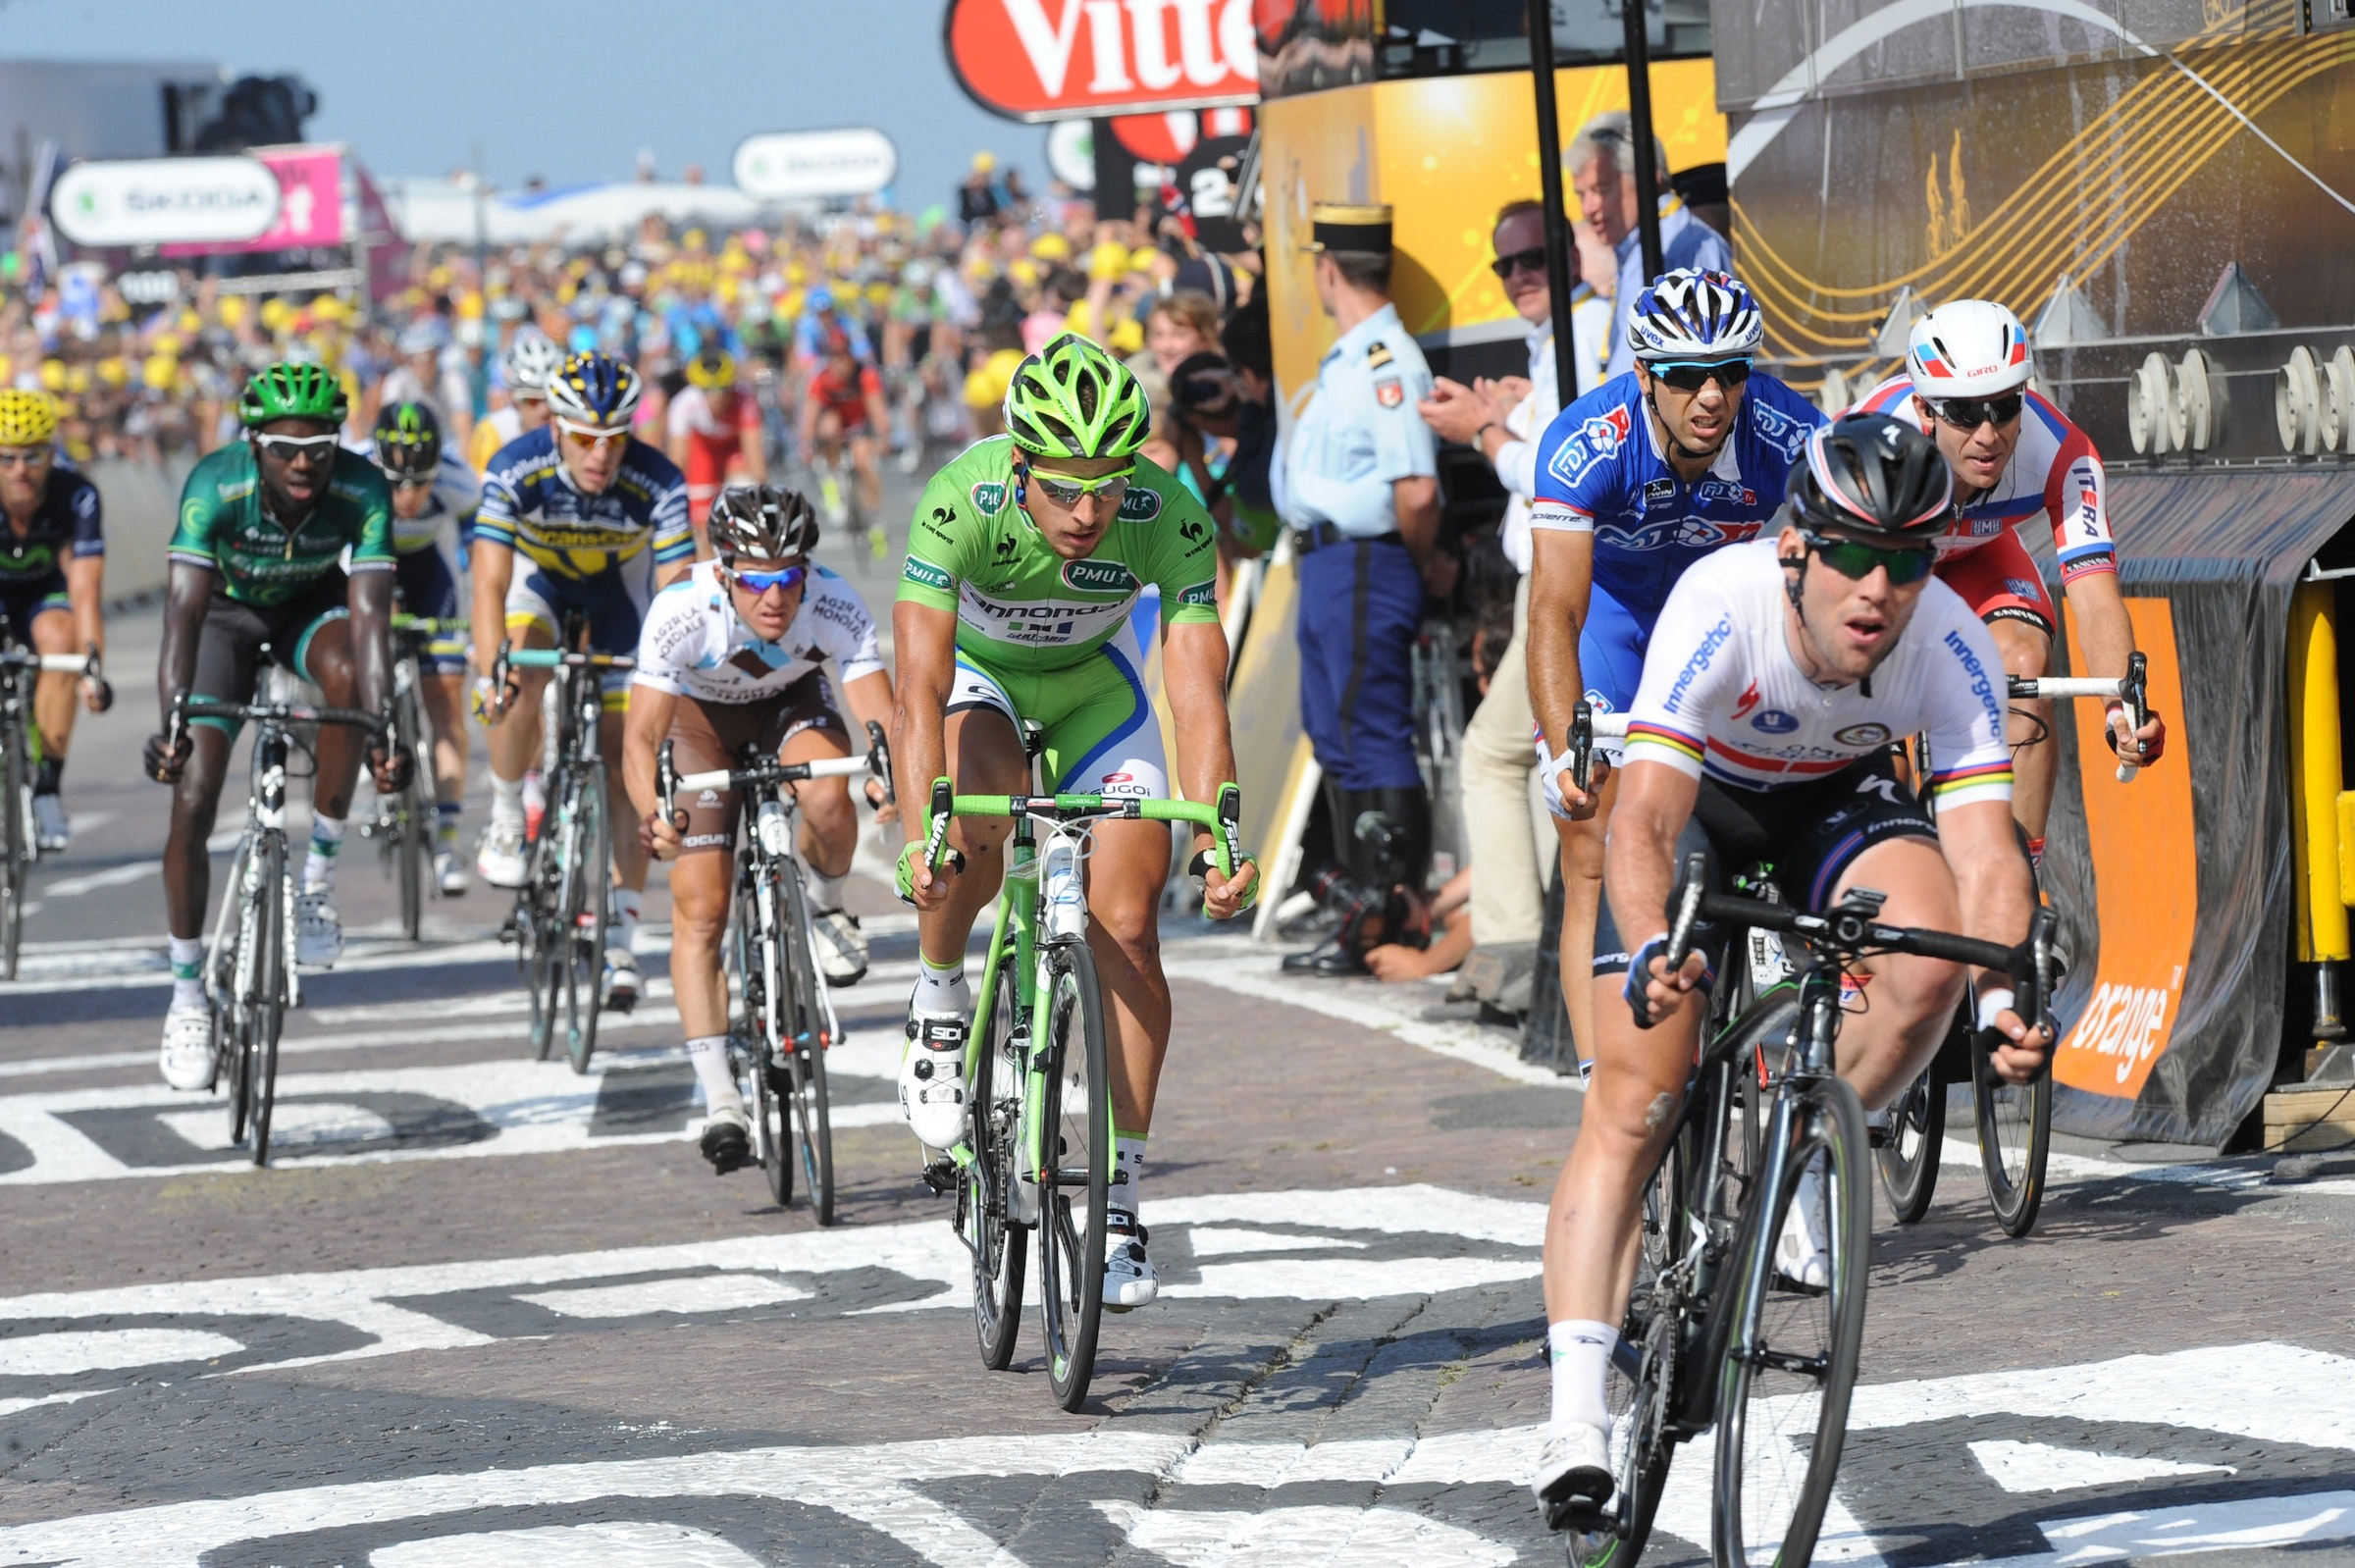 Mark Cavendish and Peter Sagan, Tour de France 2013, stage ten, finish, pic: ©Stefano Sirotti